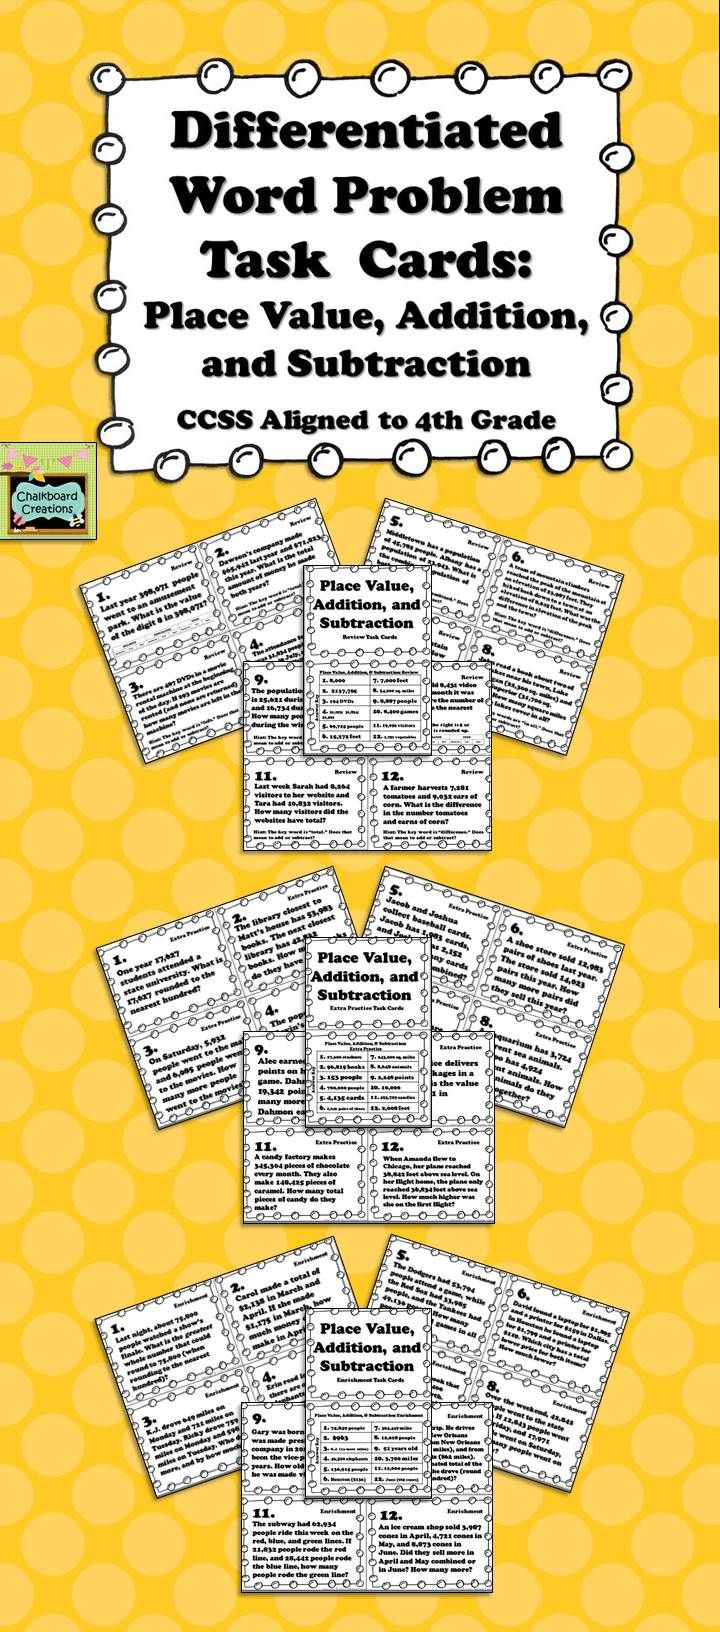 Set of 36 place value, addition, and subtraaction task cards aligned with 4th grade CCSS! Three subsets of cards: review, extra practice, and enrichment. Each set contains 12 word problem task cards. The review cards have hints for the students. The enrichment cards include multi-step problems and involve higher level thinking skills. These task cards are great for early finishers, small group practice, individual review or enrichment, or test preparation! $ #taskcards…